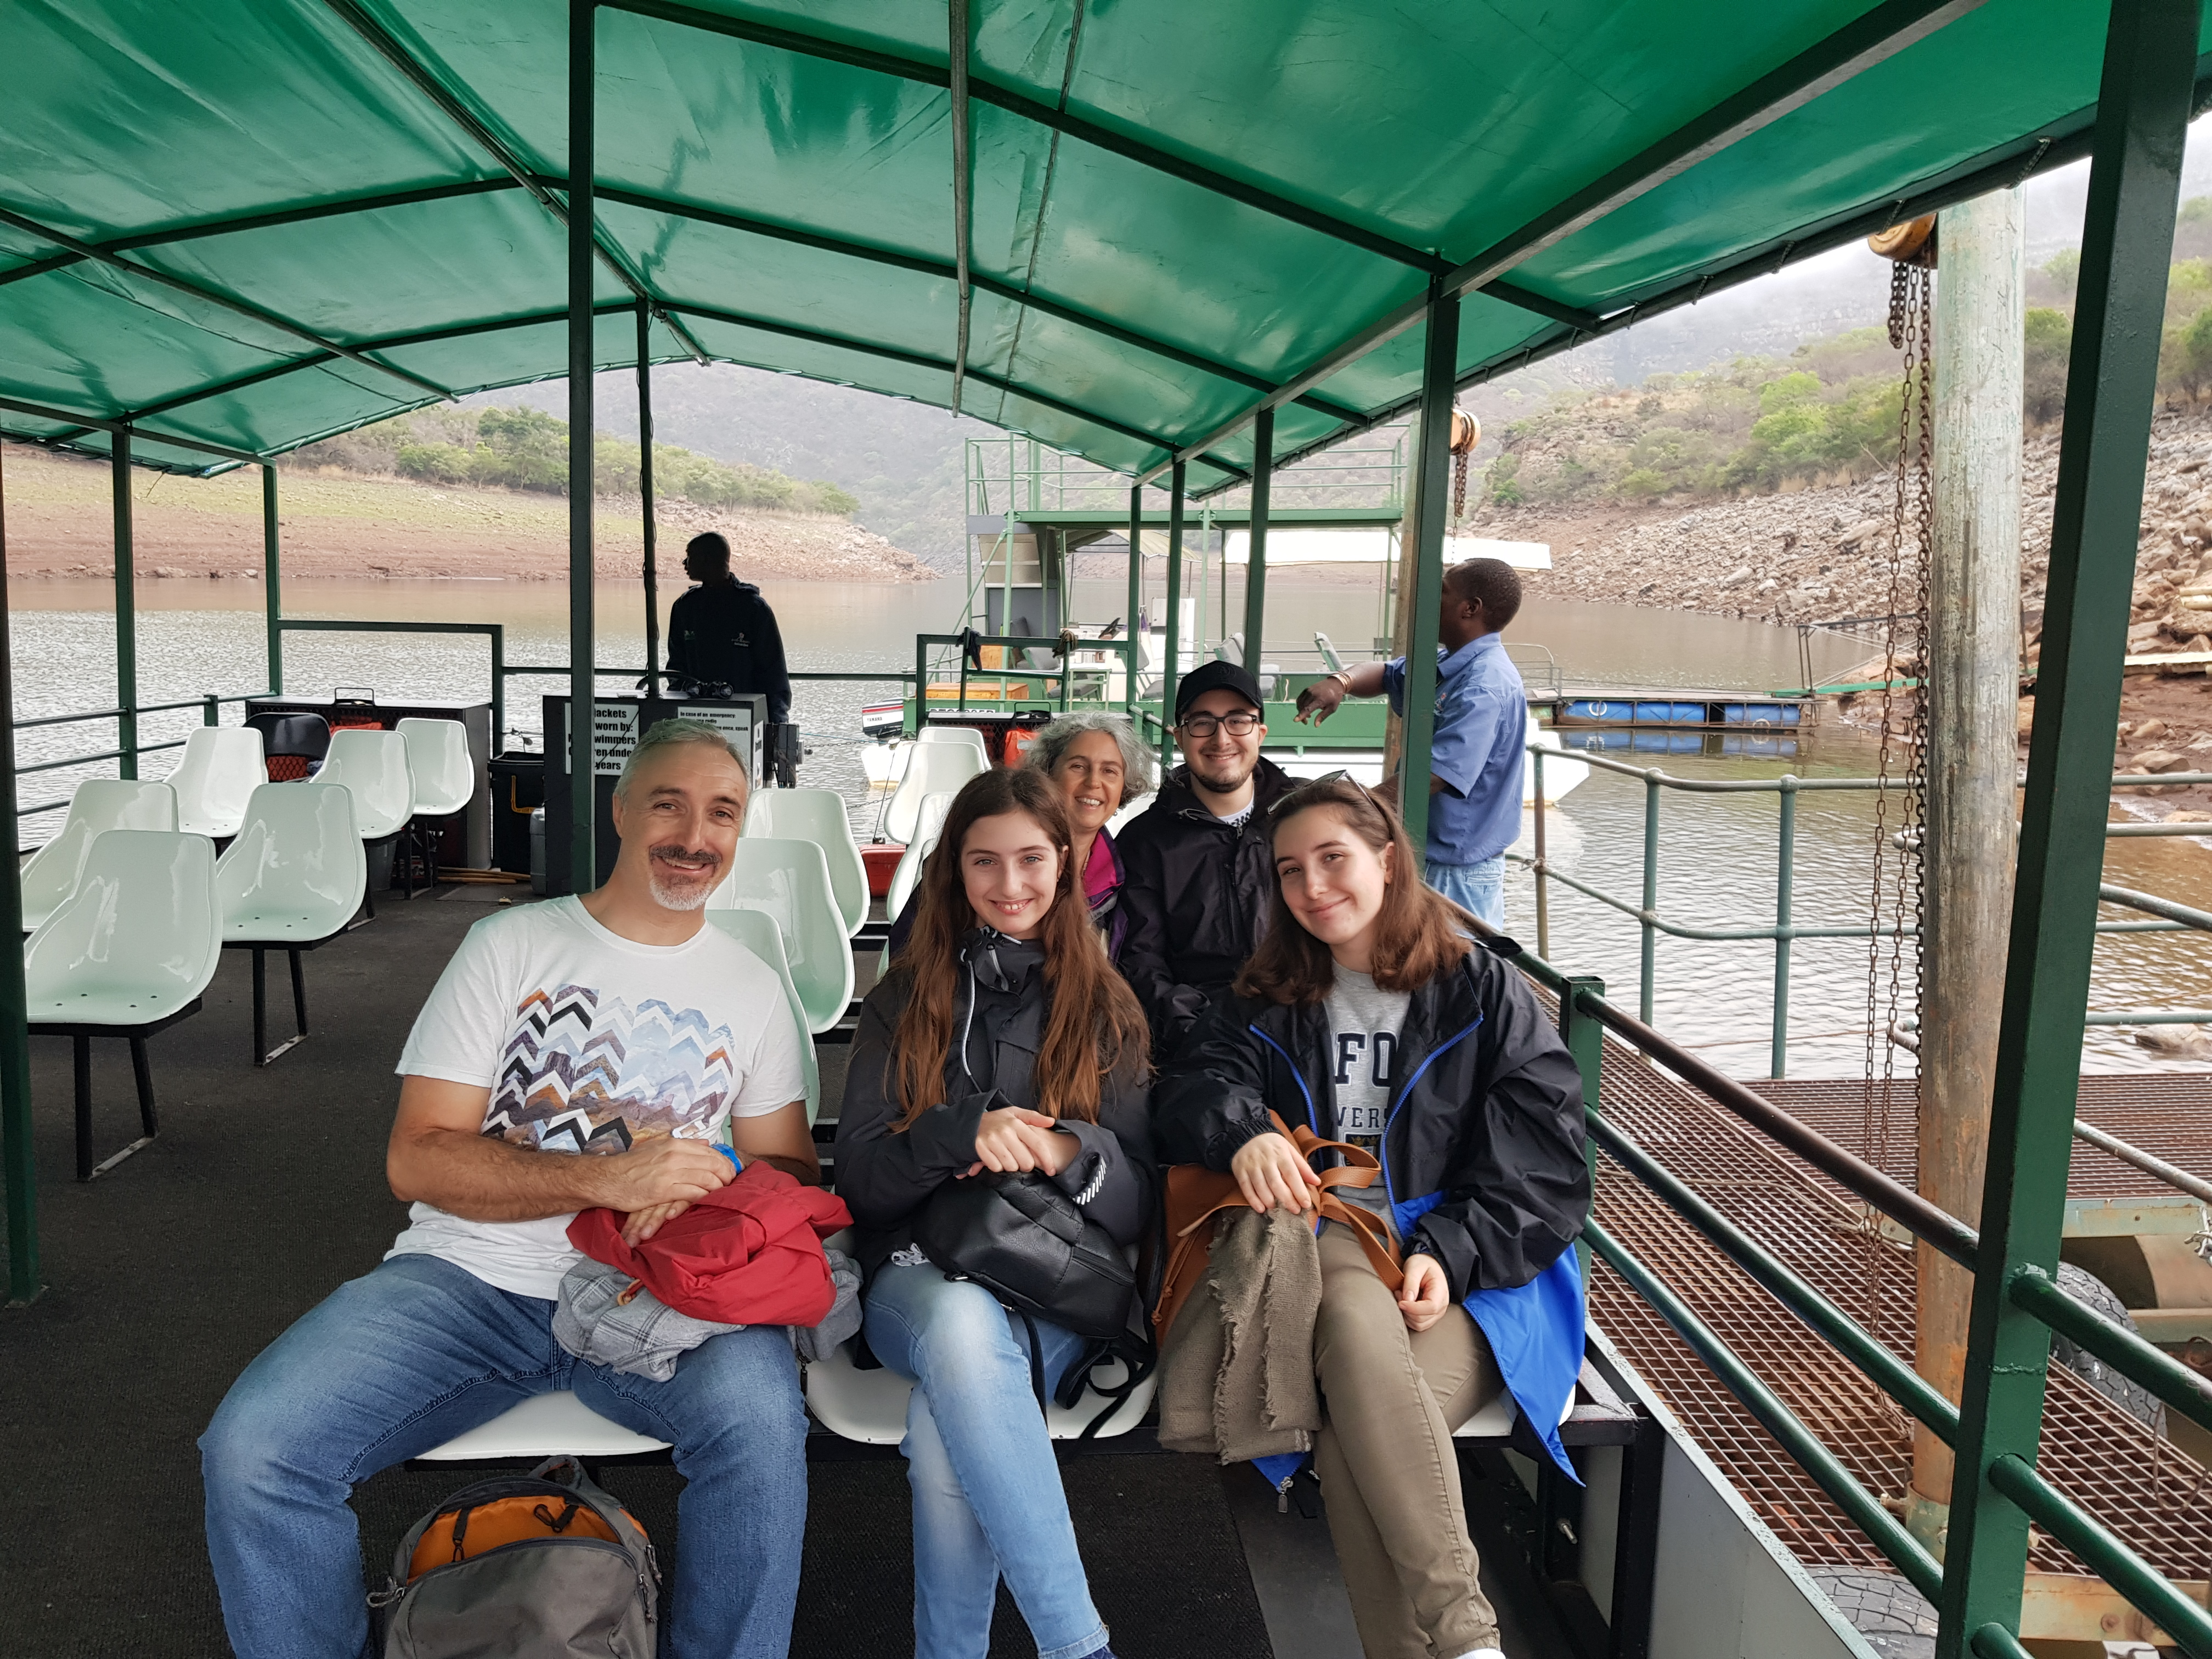 Ferry ride on Blydepoort dam with Italian guests